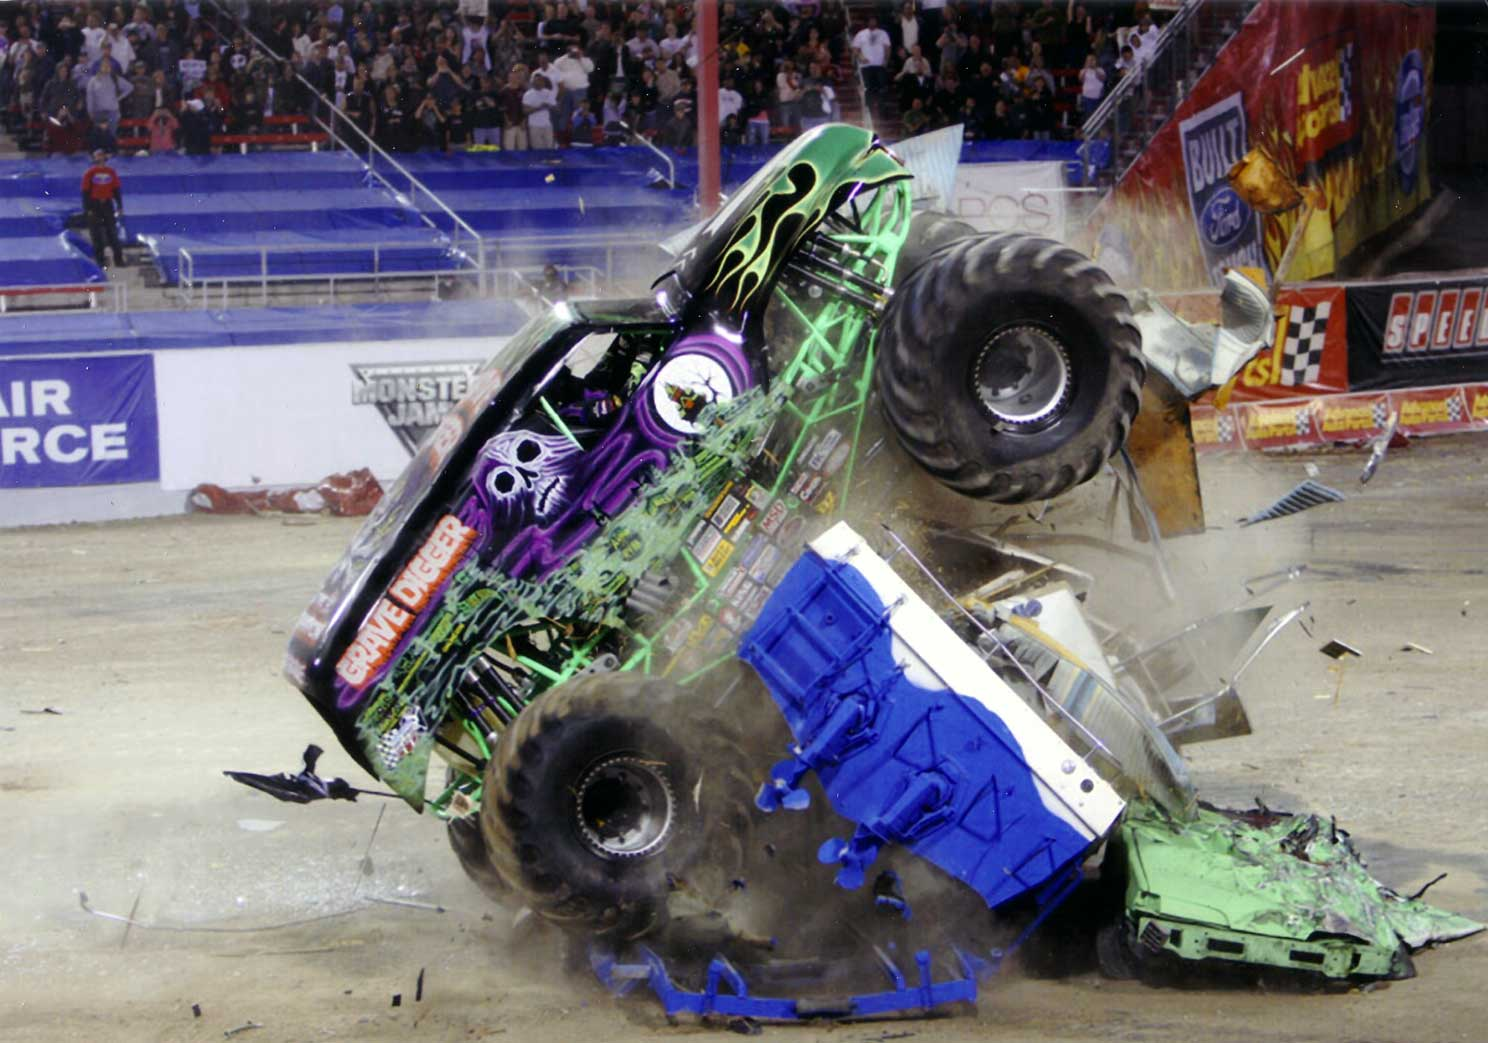 grave digger coloring page decimamas - Grave Digger Truck Coloring Pages